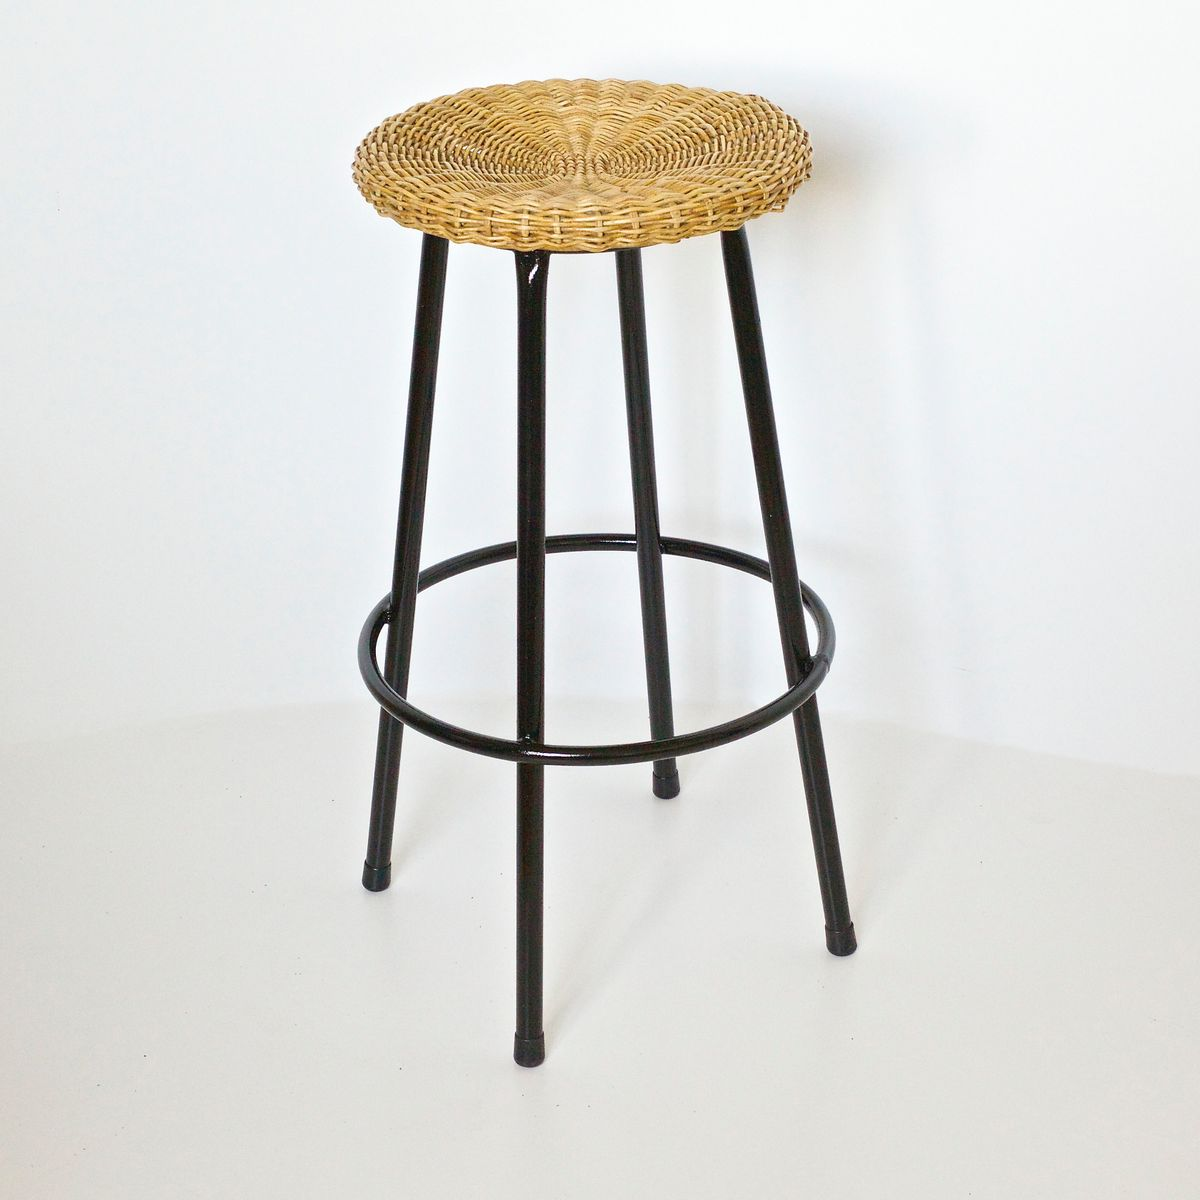 Vintage High Wicker Bar Stool From Rohe Noordwolde 1950s For Sale At Pamono